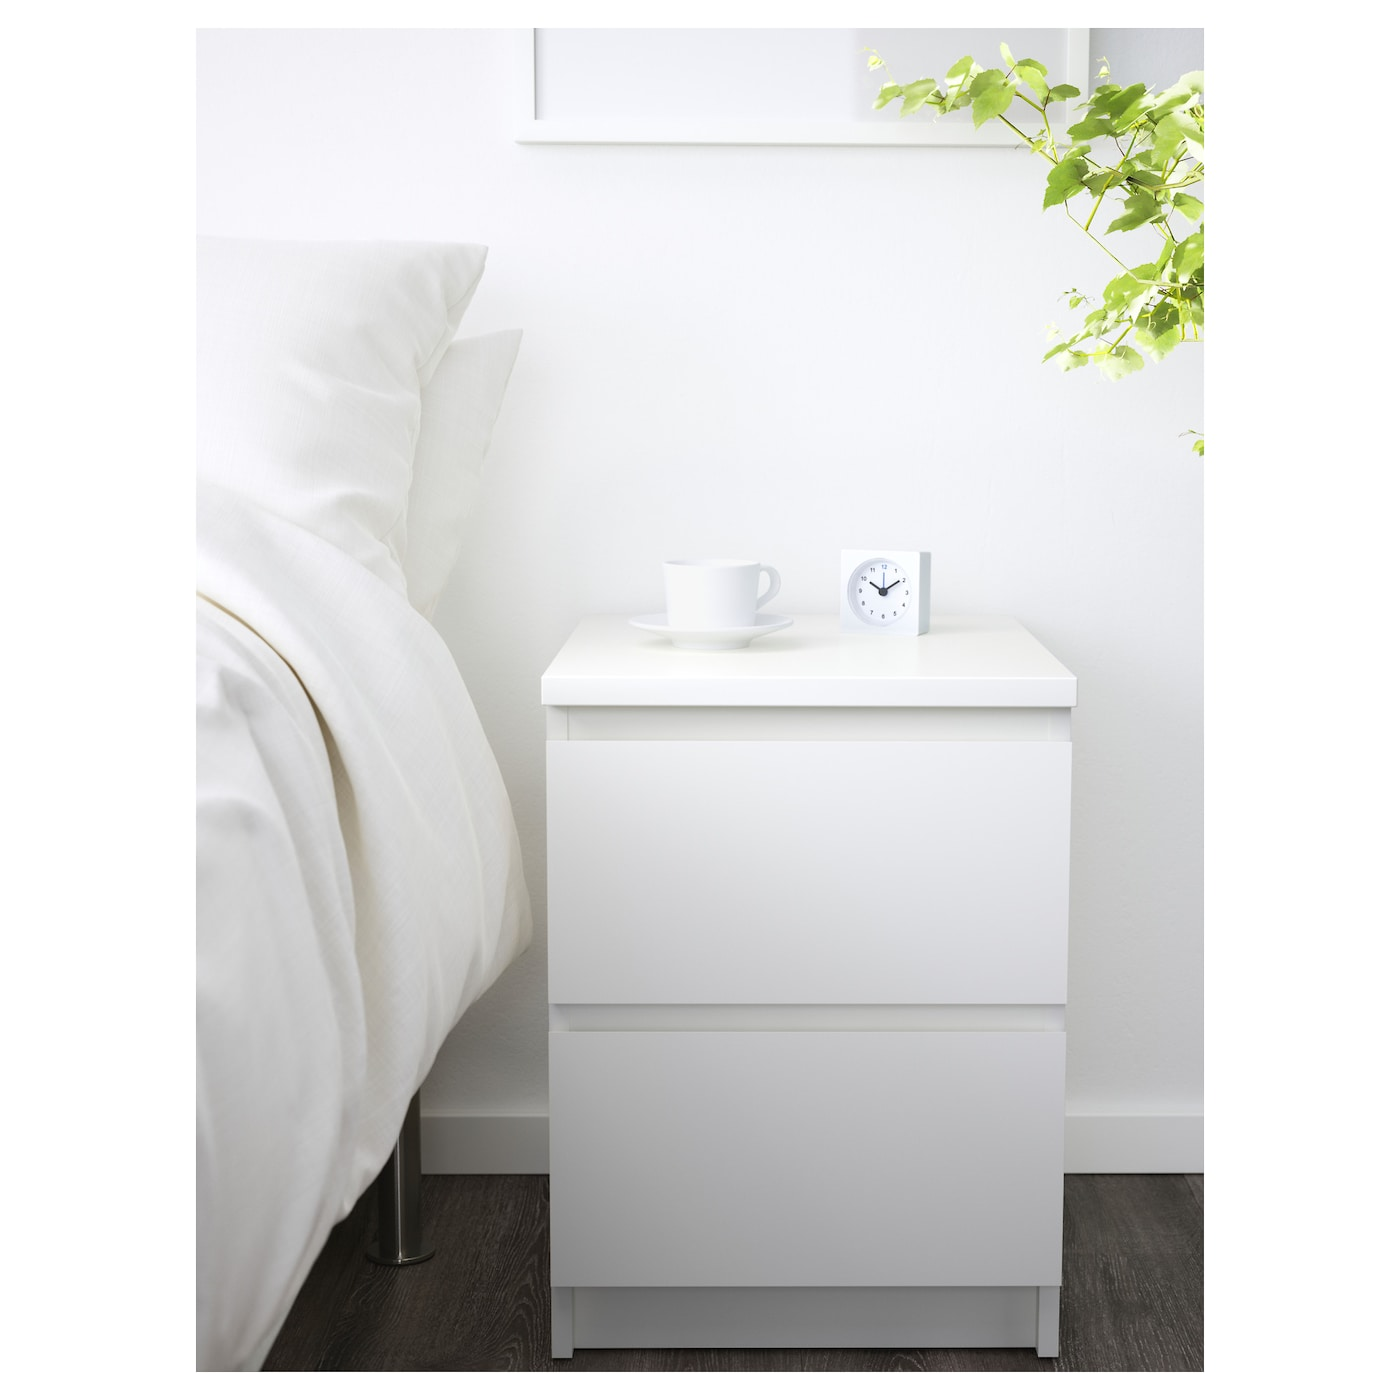 Malm 2 Drawer Chest White 15 3 4x21 5 8 Ikea,Layout For Small Living Room With Fireplace